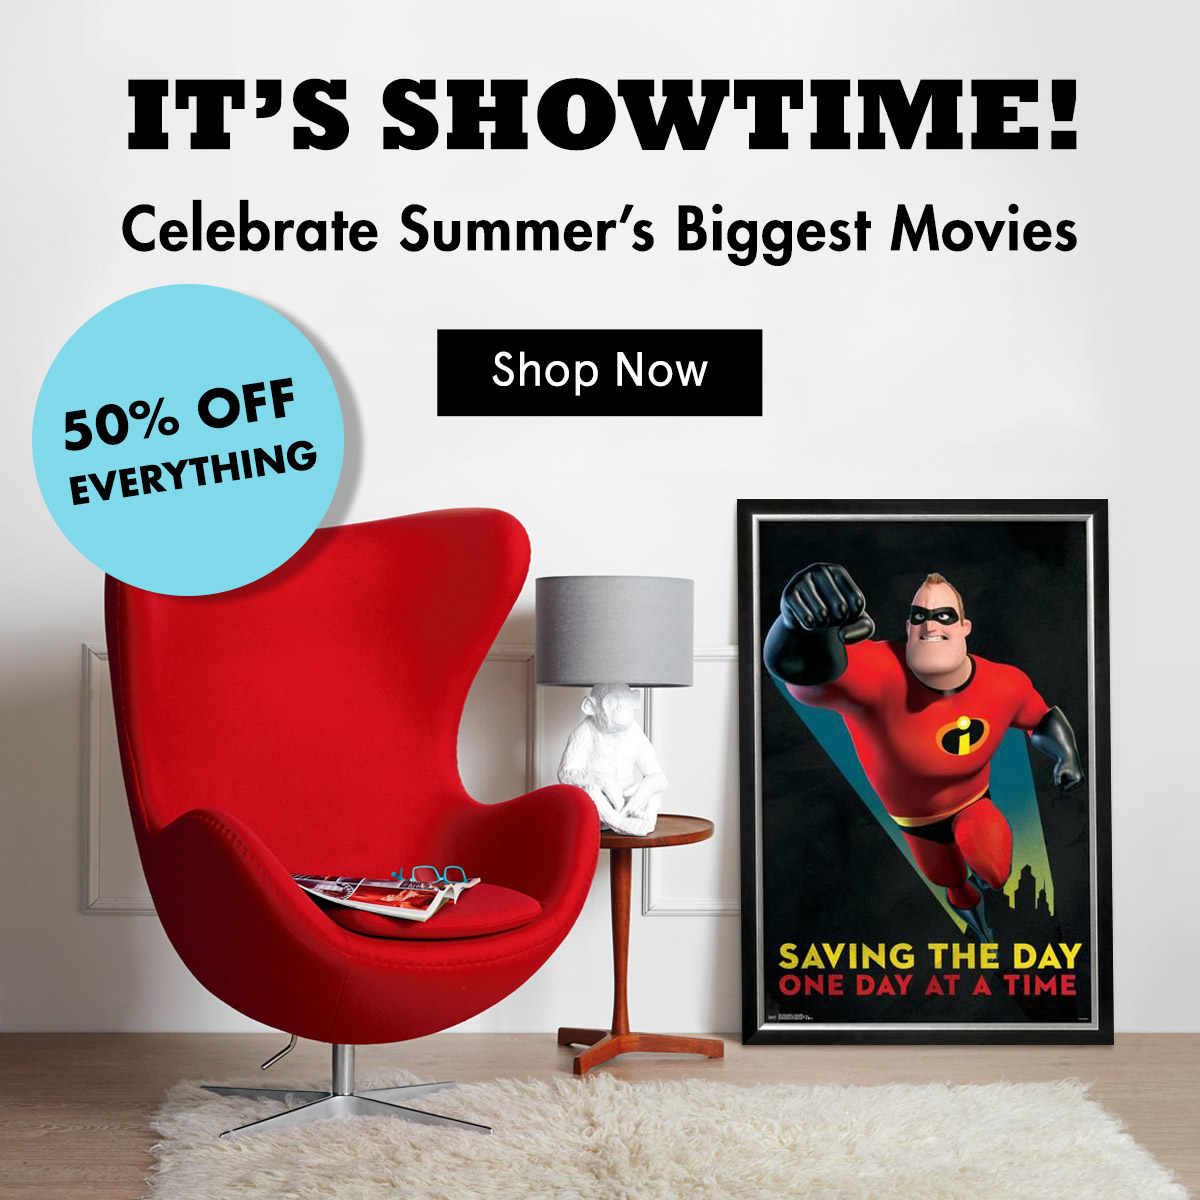 50% Off Everything. It's Showtime. Celebrate Summer's Biggest Movies.